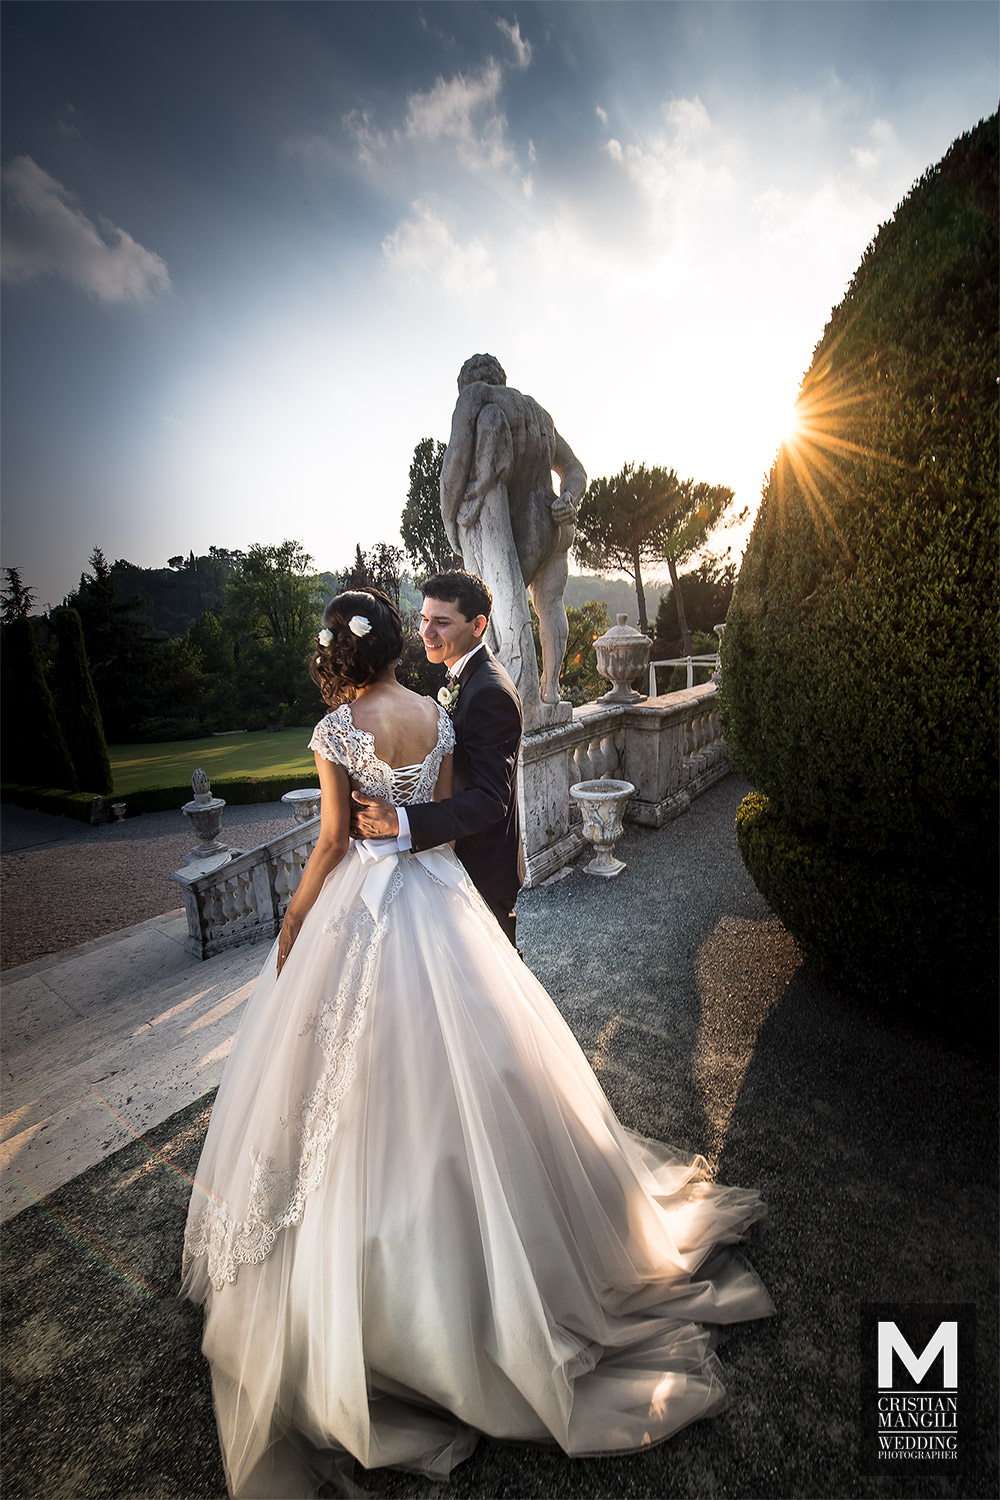 marriage-at-sunset-in-italy-wedding-photographer